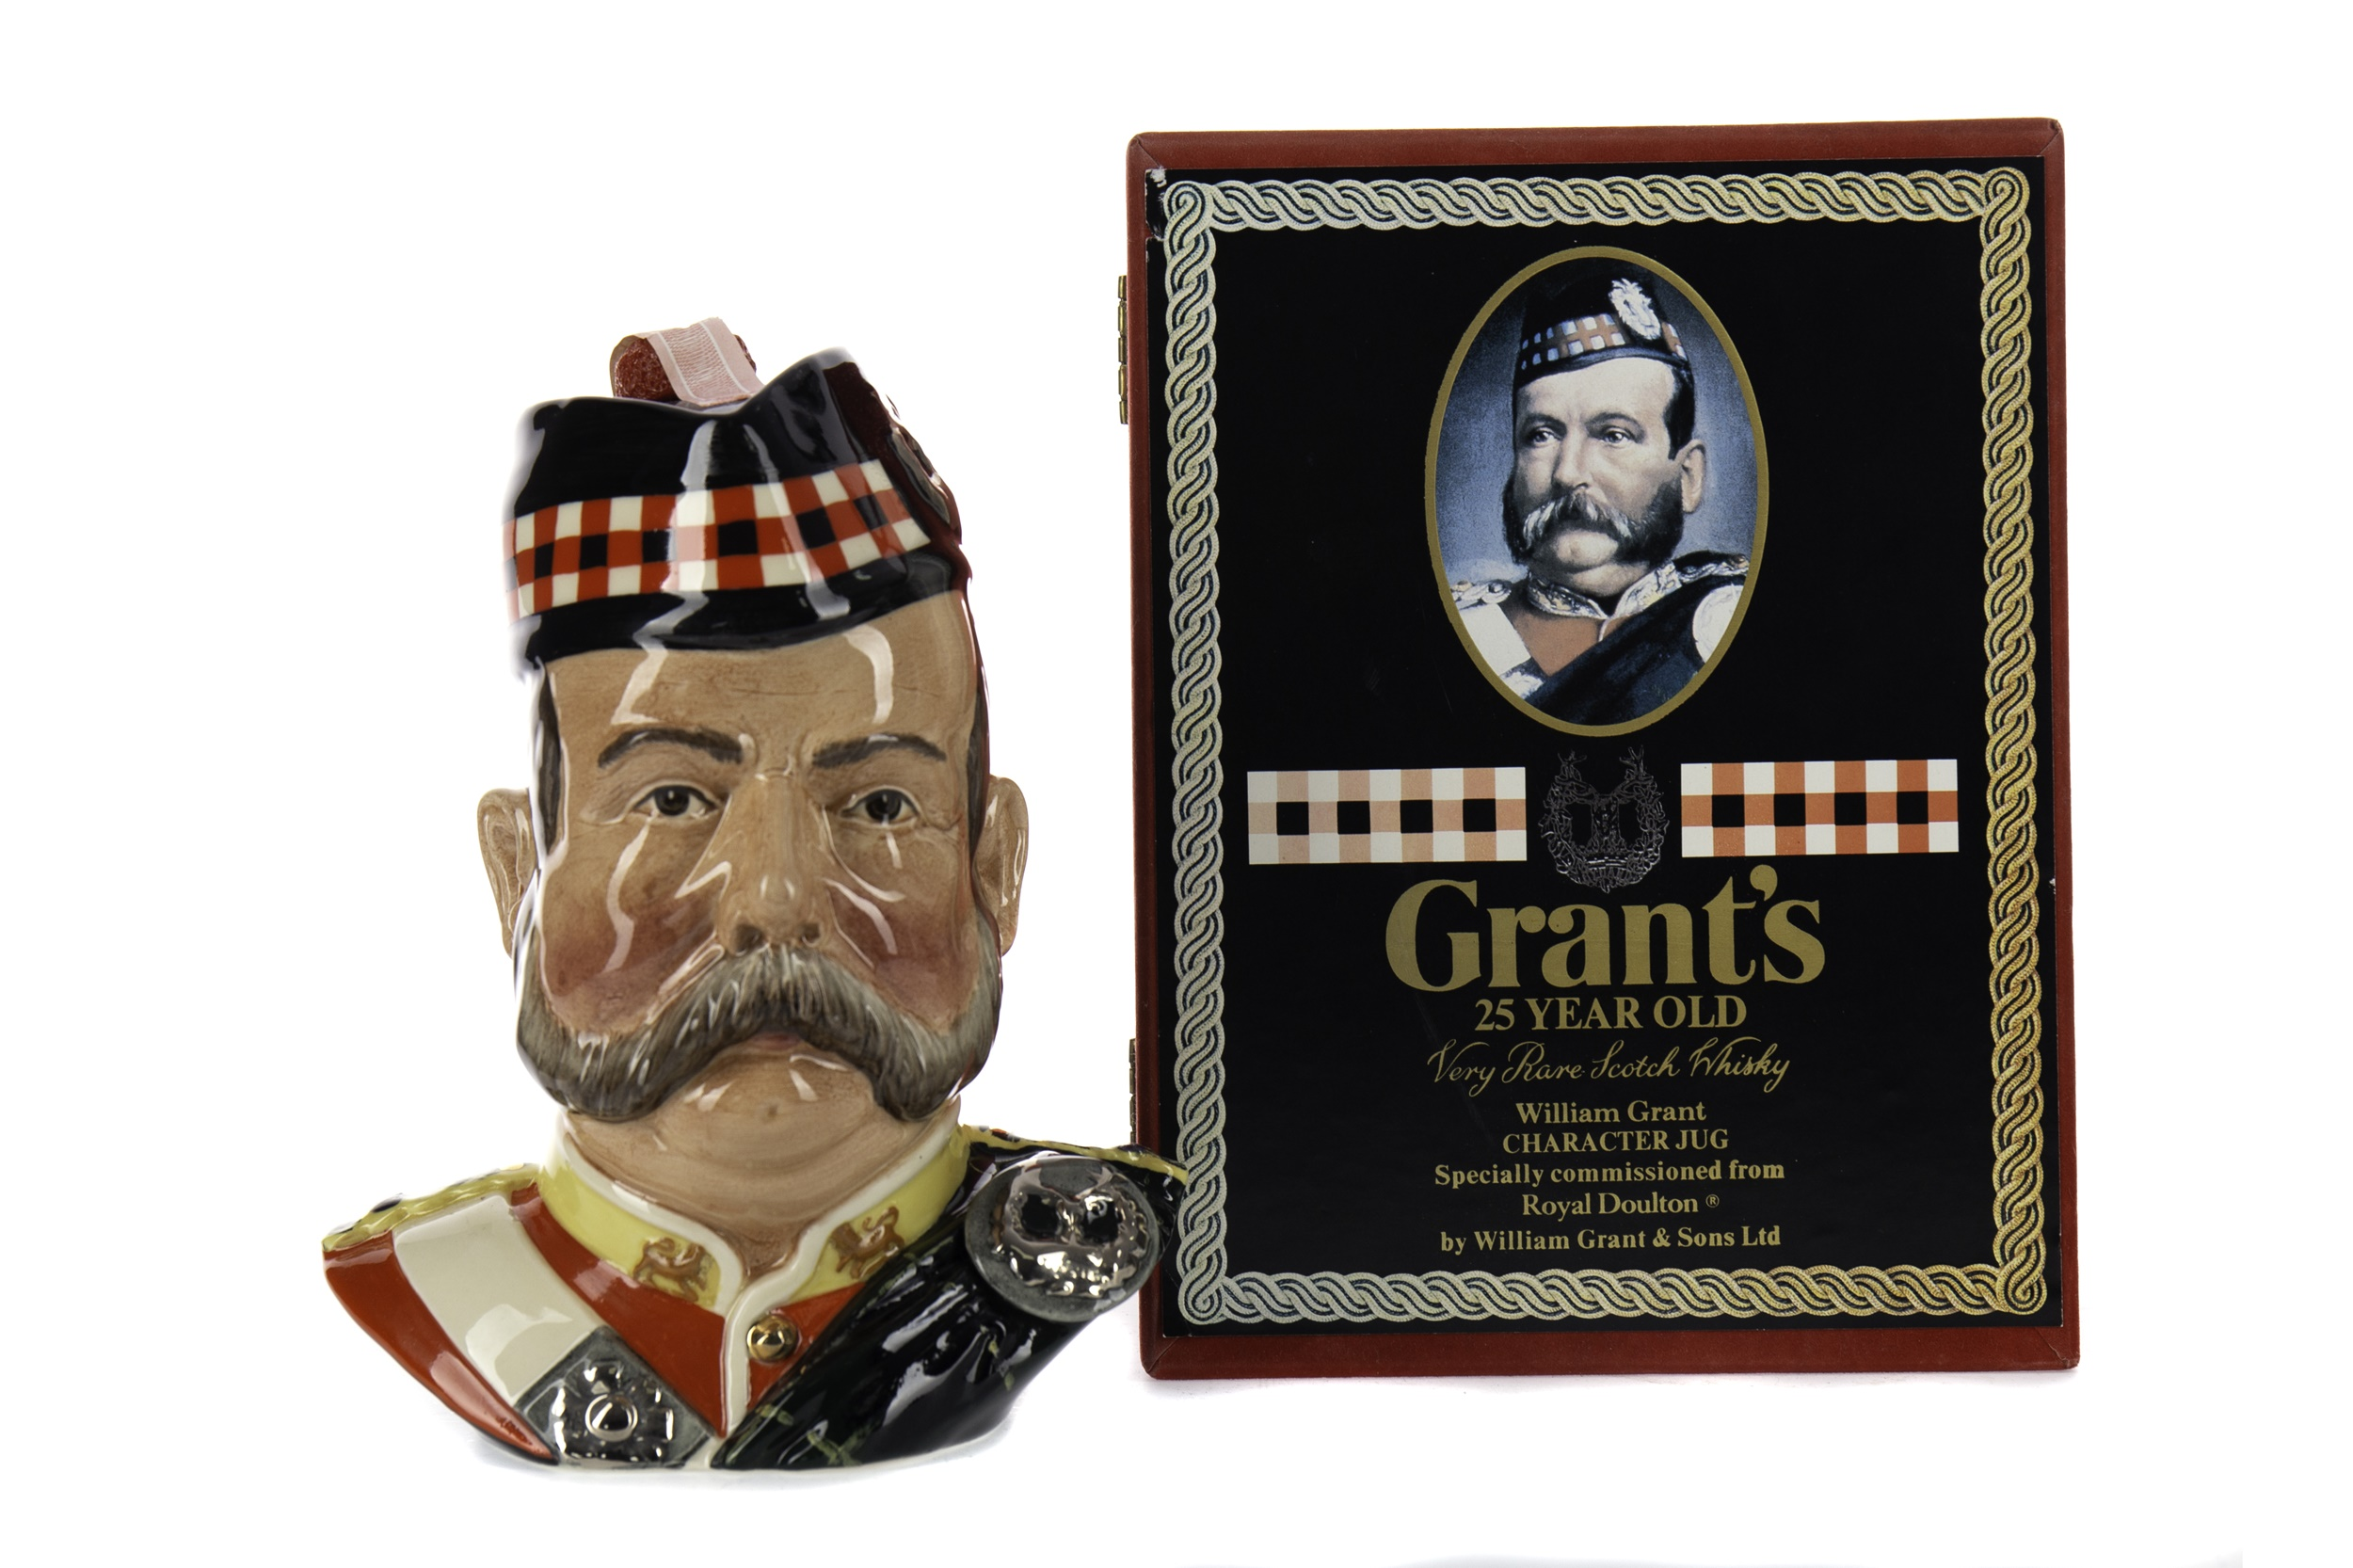 GRANT'S 'WILLIAM GRANT CHARACTER JUG' AGED 25 YEARS